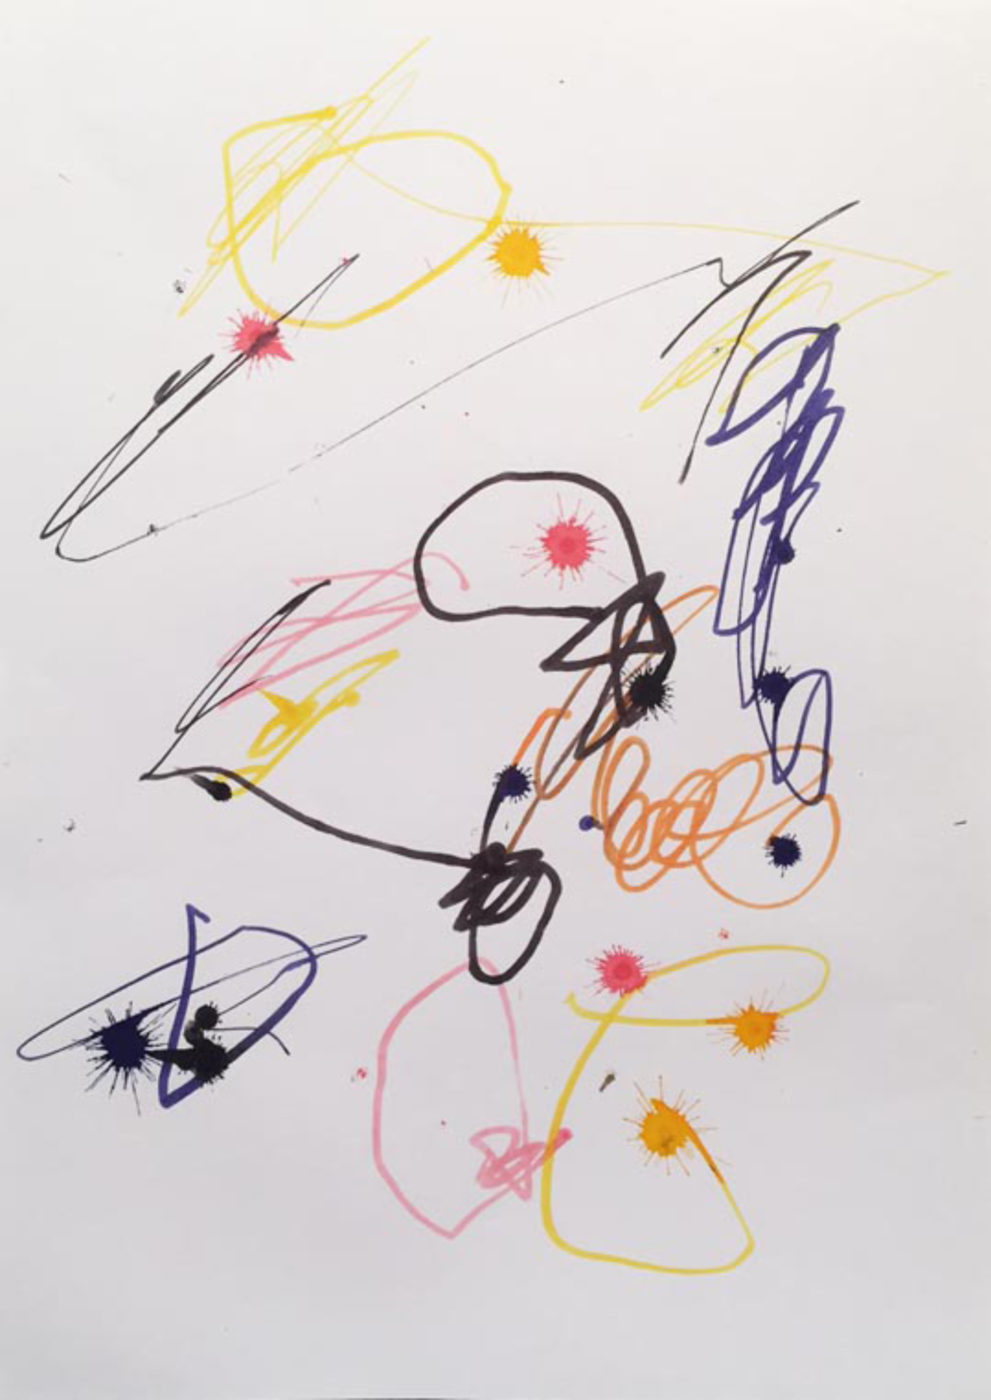 MARC FELD 2003 LITTLE SONG FOR MAURICIO KAGEL 4 Stylo feutre sur papier 21x29, 7 cm